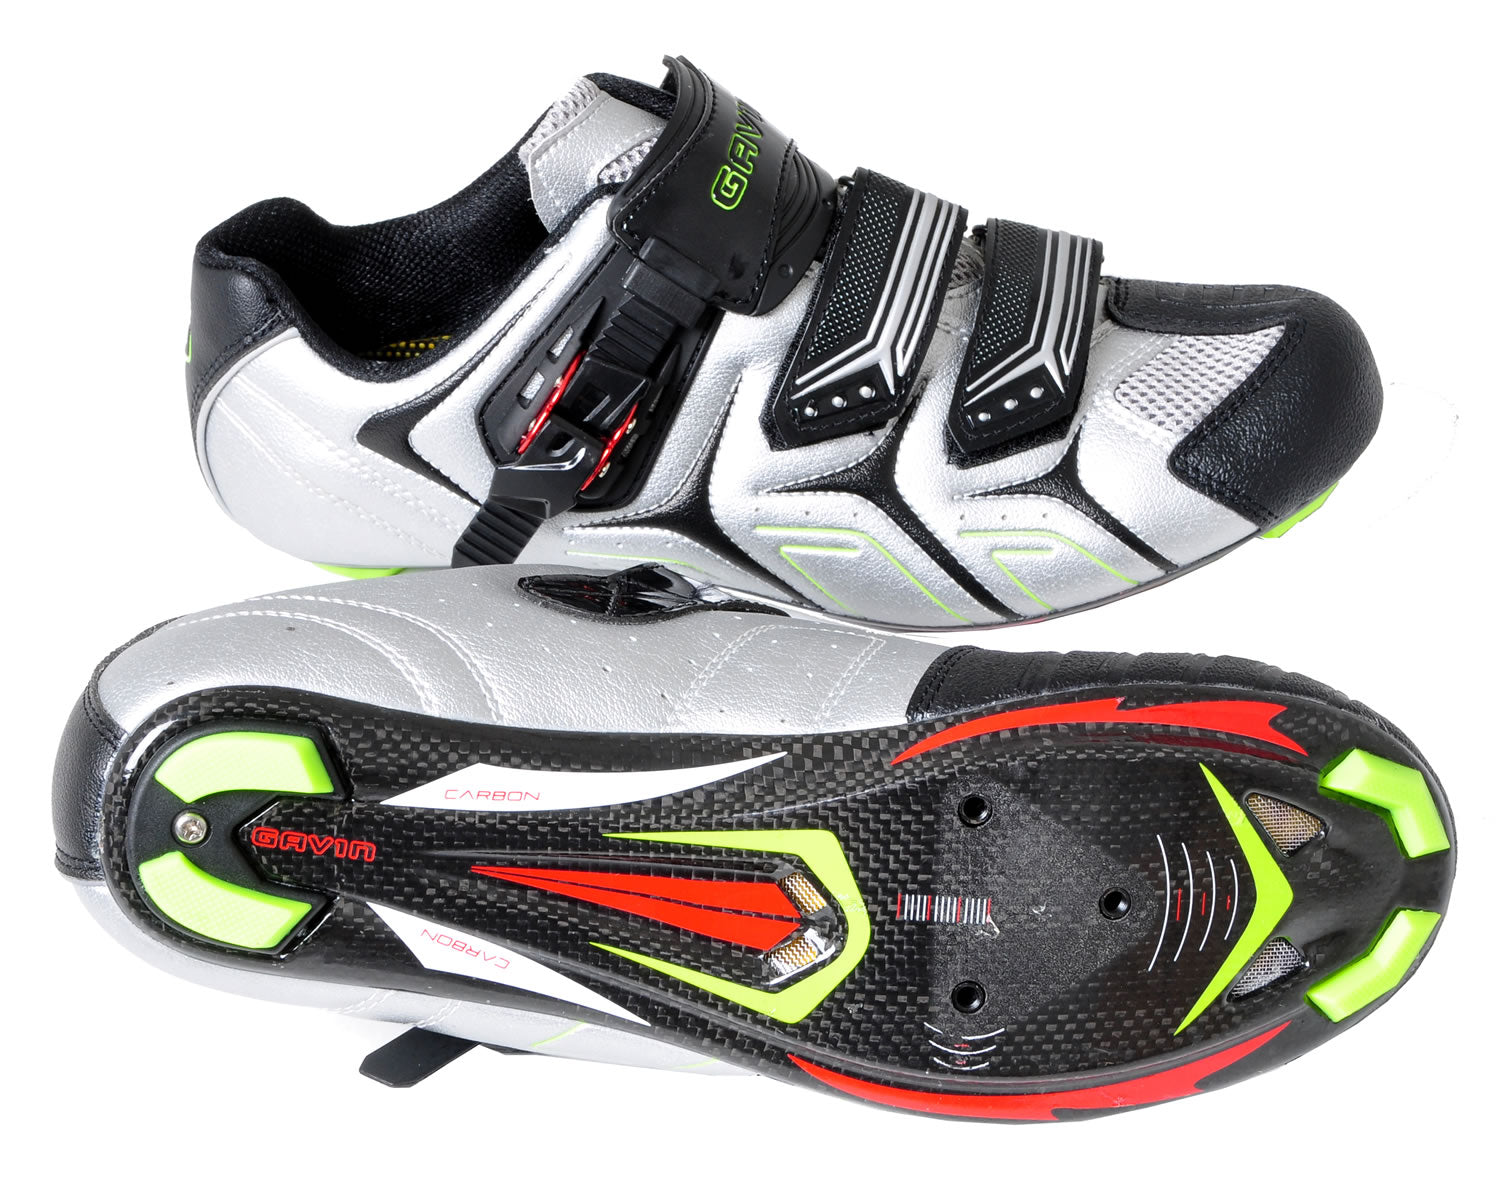 products/525-CARBON-SHOE__01.jpg_3.jpg